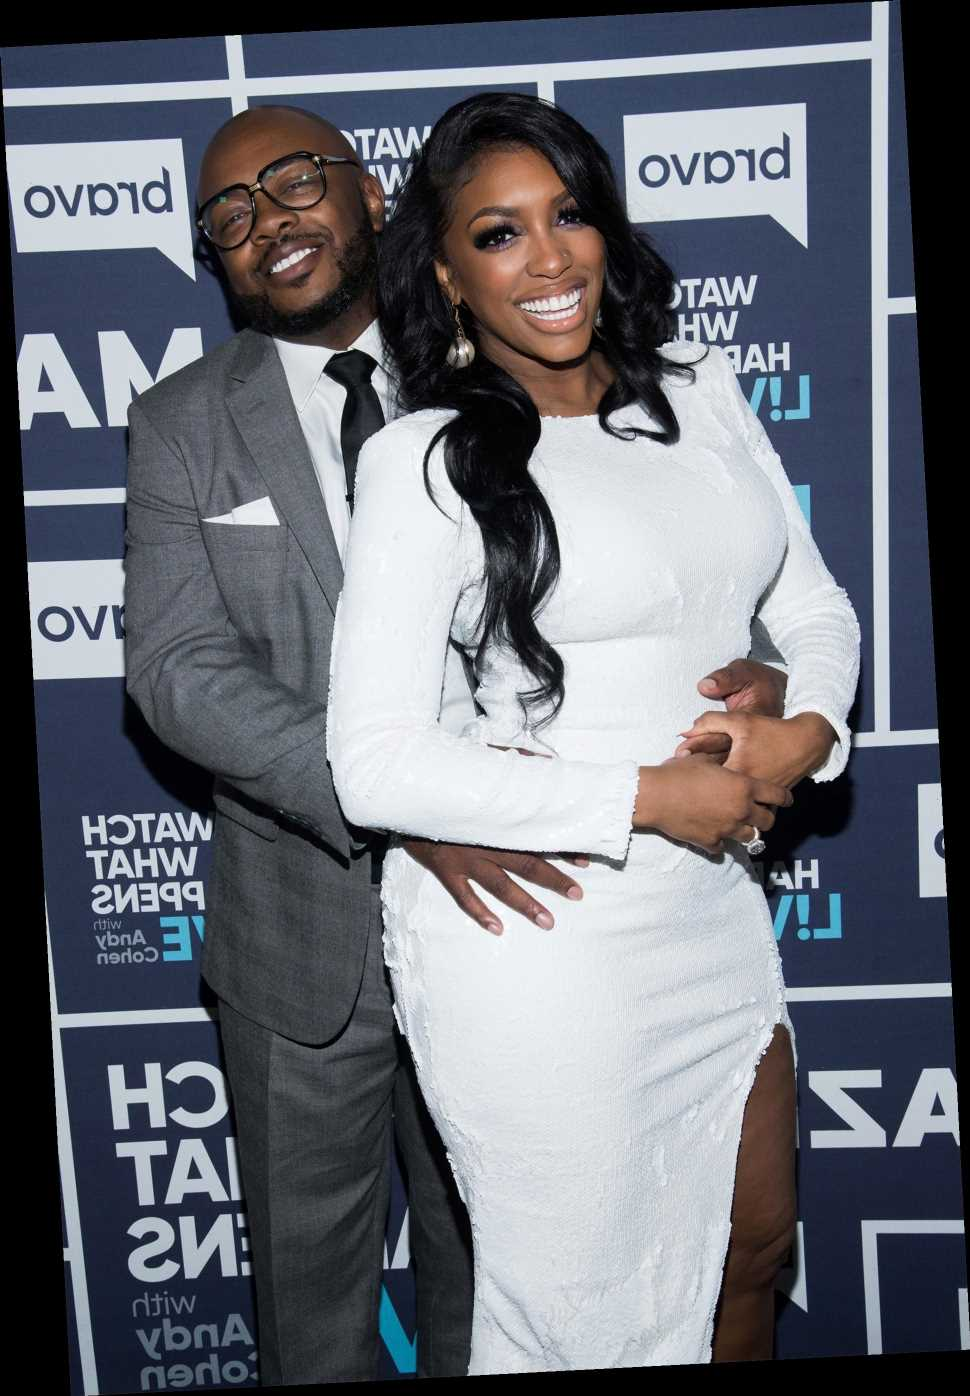 Porsha Williams Still Hopes to 'Get Married on Television' After Fiancé's Cheating Scandal